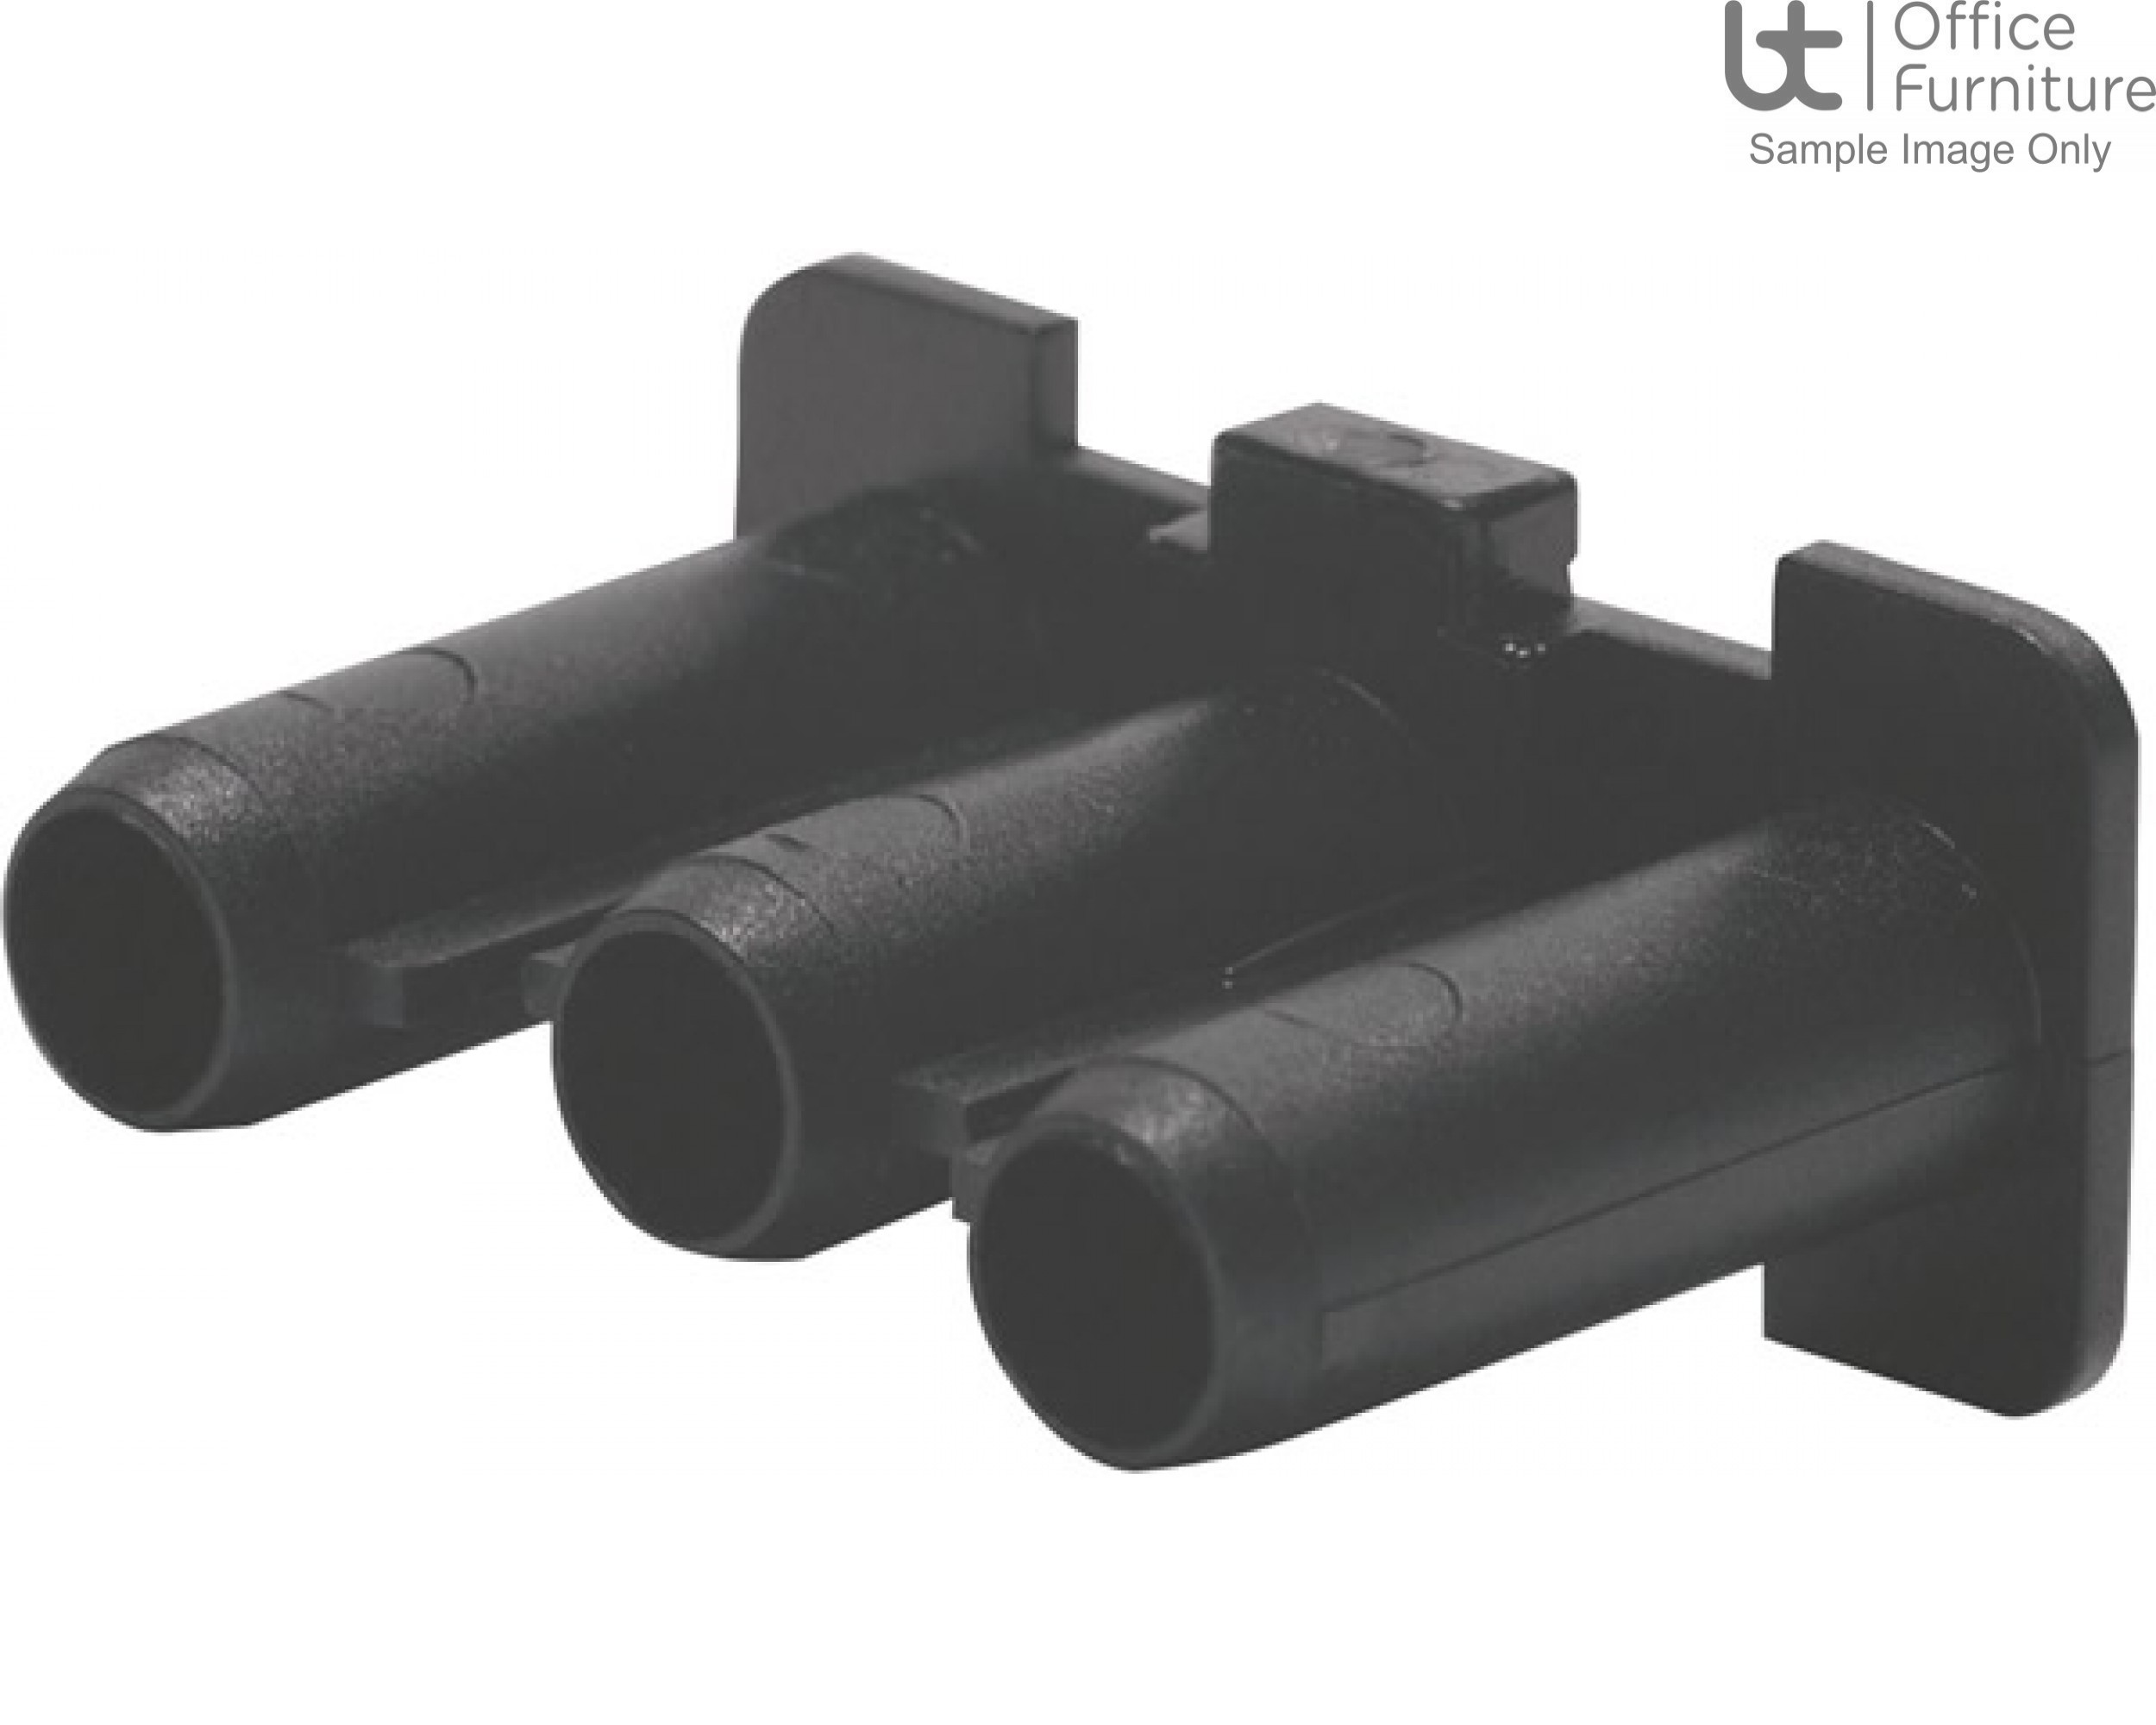 DMC Cable Accessories - 16 Series Blanking Plugs - Male